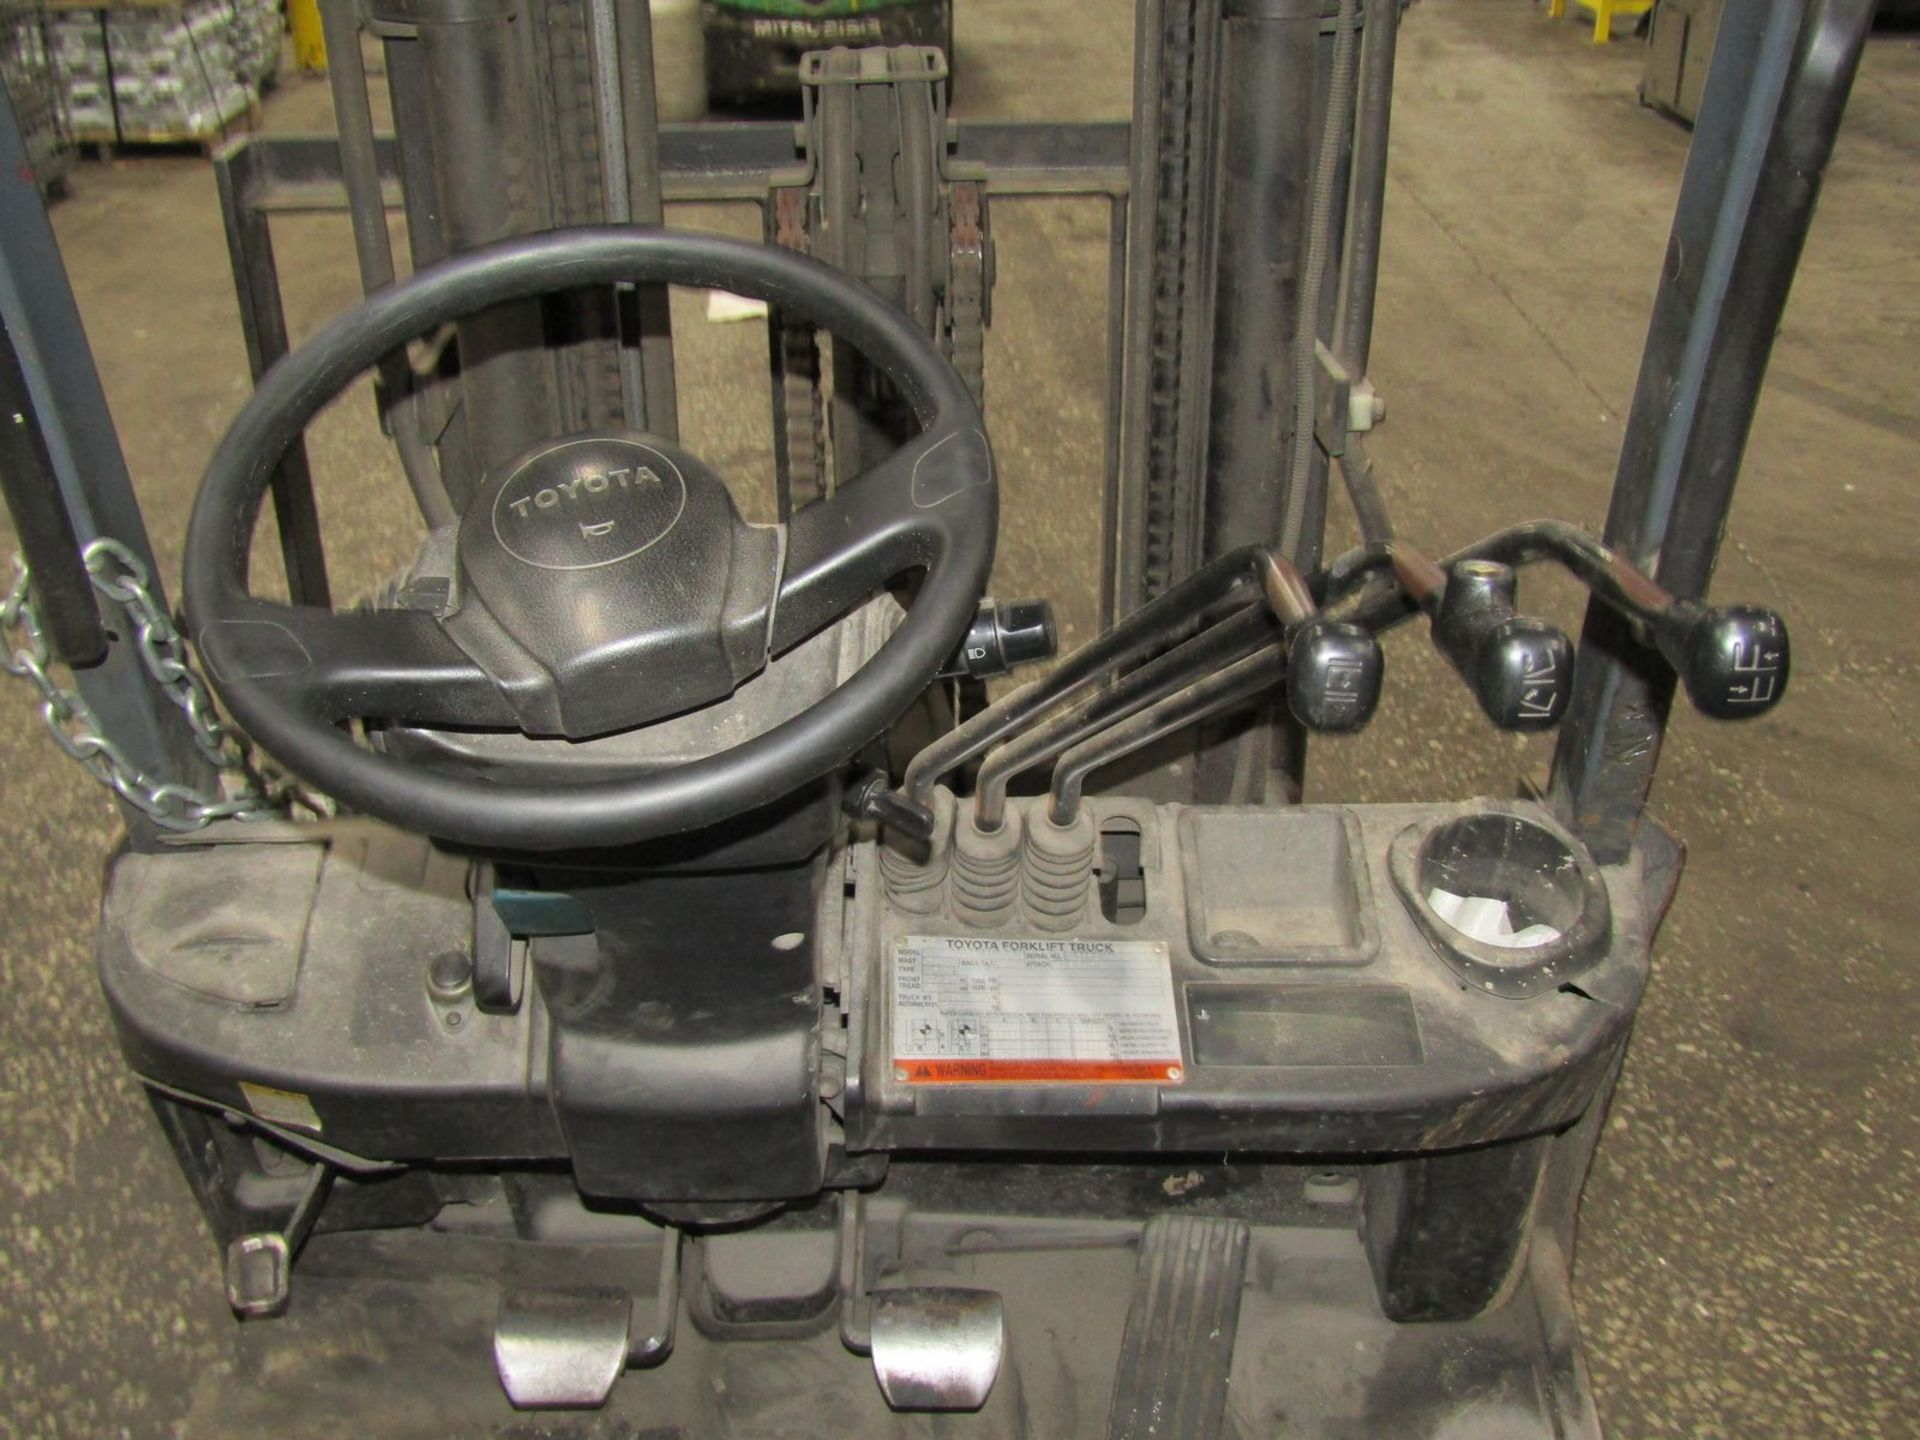 Toyota 2,200 lb. Cap. Model 8FGCSU20 LP Fork Lift Truck, S/N: 13770; with 3-Stage Mast, Side - Image 9 of 11